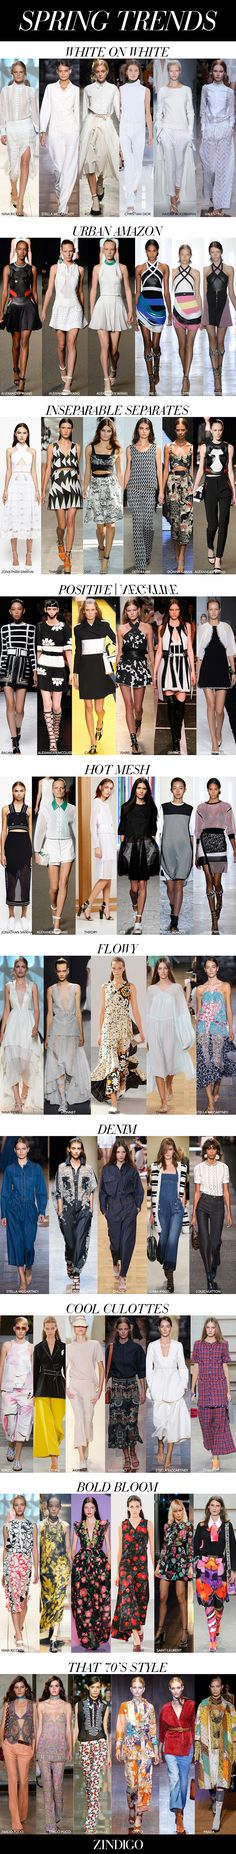 Your trend guide to Spring fashion trends 2015 has arrived! For Spring 2015, designers are celebrating women and the styles that match their many lives. Some of the most popular color trends include: White on White, Positive/Negative, Bold Bloom, 70's Style, Denim, Flowly, Urban Amazon, Hot Mesh, Inseparable Separates and Cool Culottes,   With plenty of choices, consider this your trend guide to this Spring/Summer season:  #Zindigo #ZindigoDaily #KareenMallet #Raoul #AliceYim